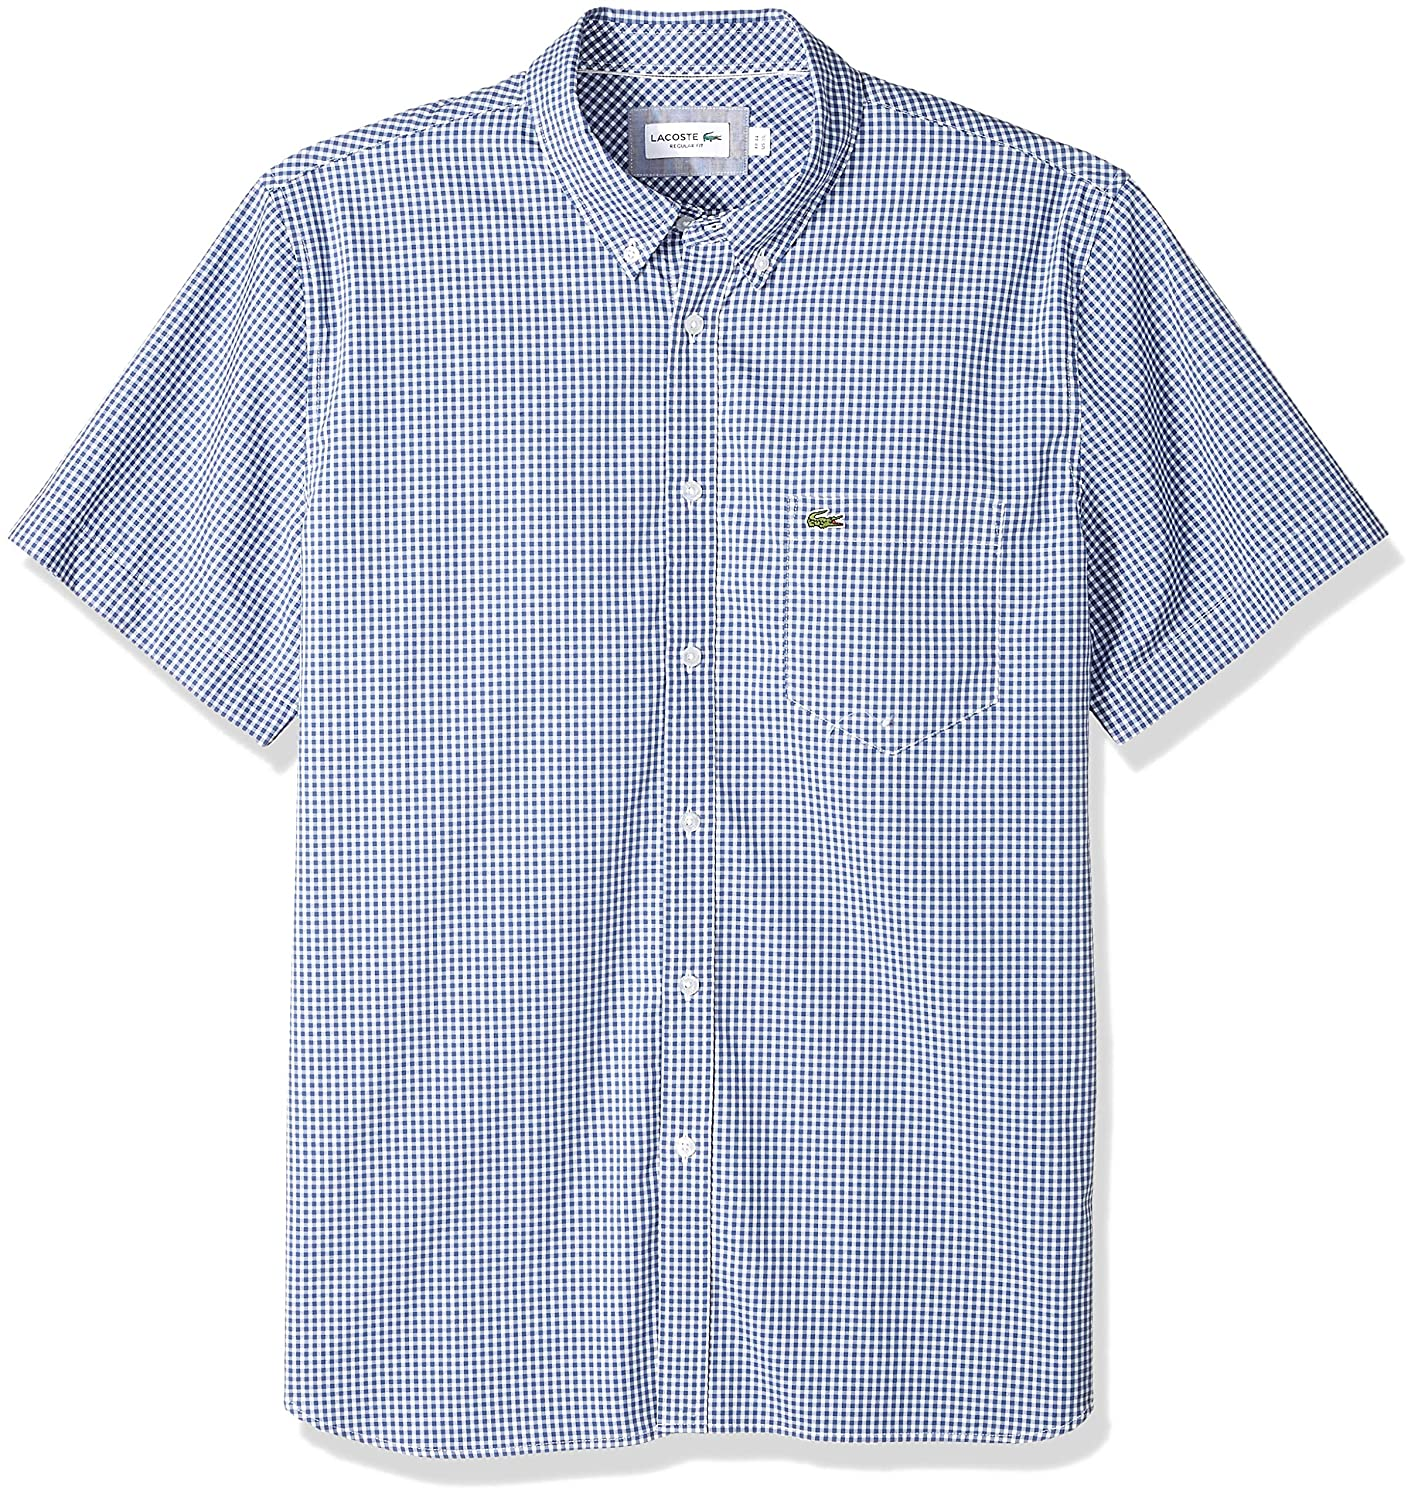 fd45f0f12 Lacoste Men s Short Sleeve Reg Fit Gingham Poplin Button Down at Amazon  Men s Clothing store